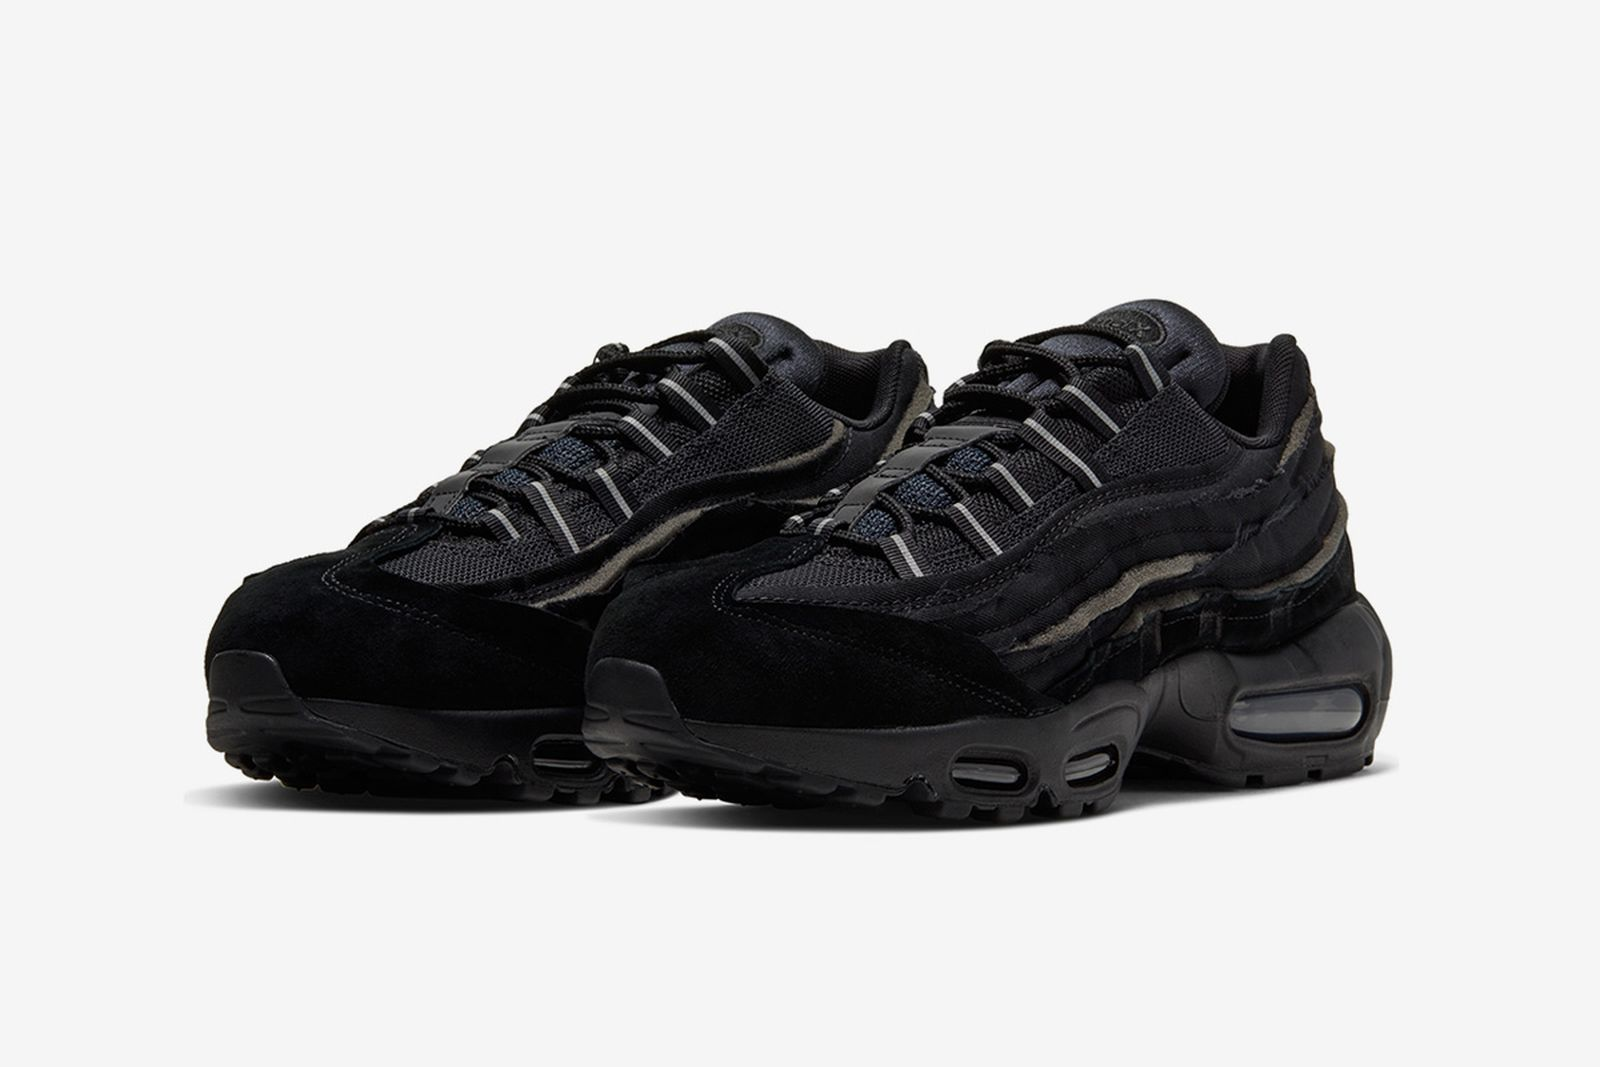 comme-des-garcons-homme-nike-air-max-95-release-date-price-official-01